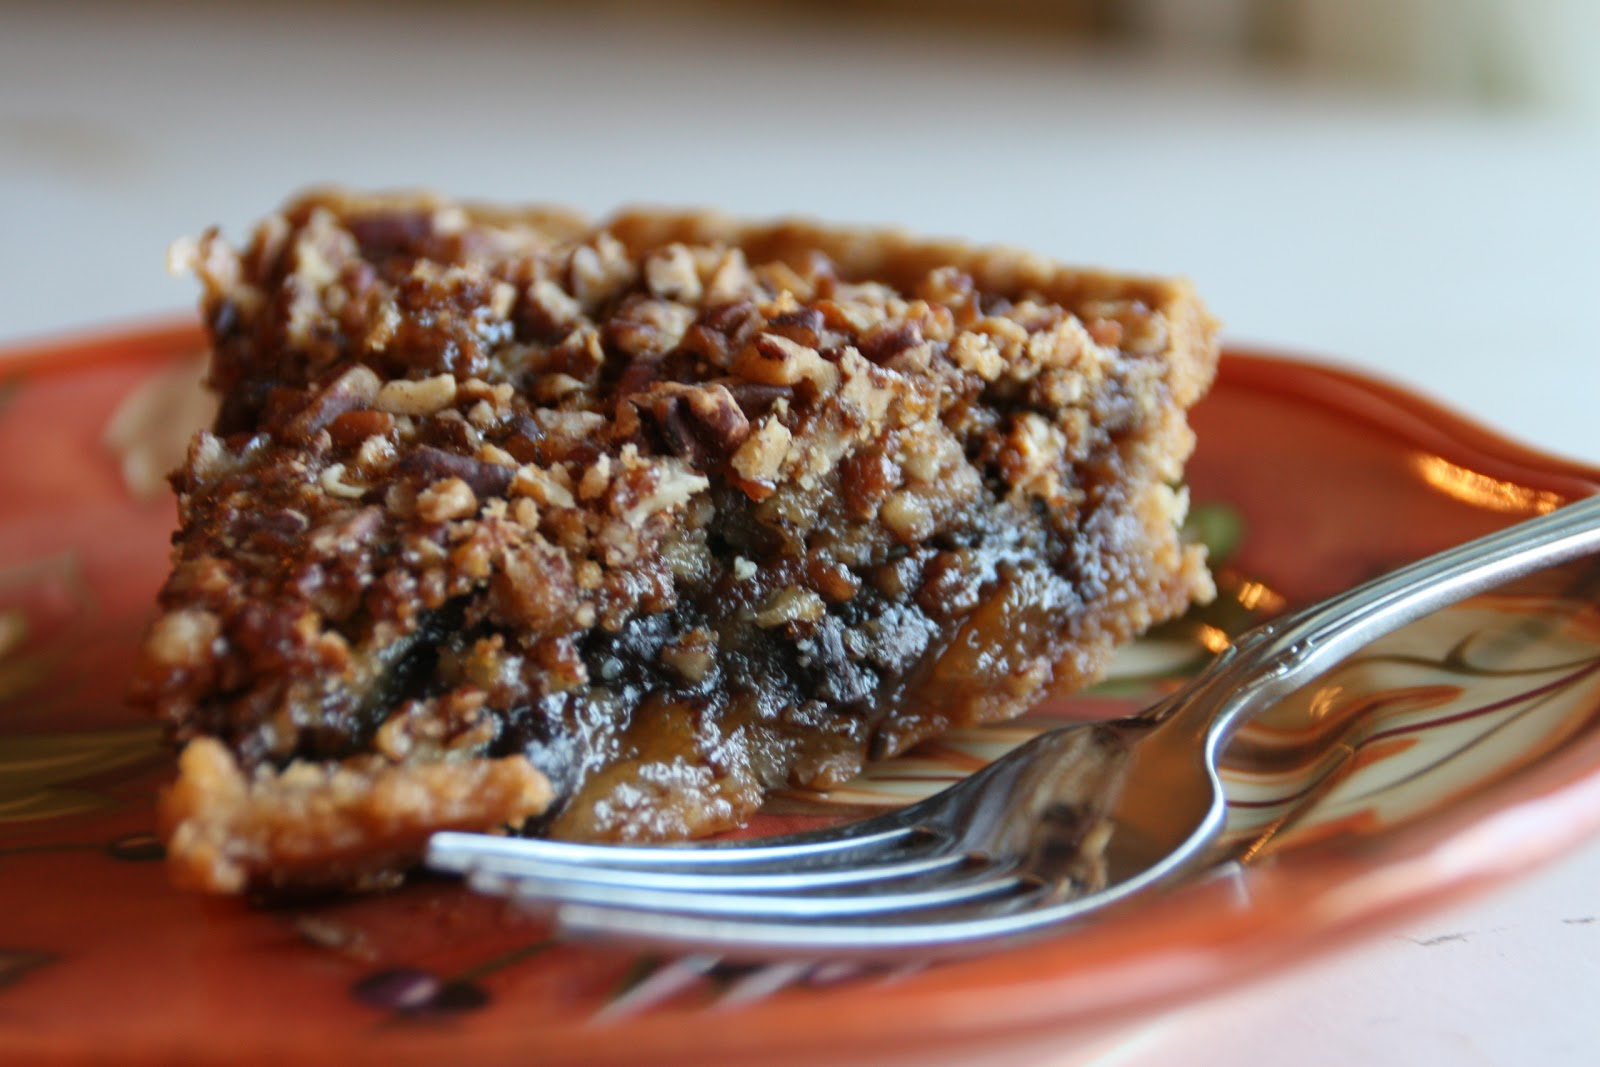 Cooking with Chopin, Living with Elmo: Bittersweet Chocolate Pecan Pie